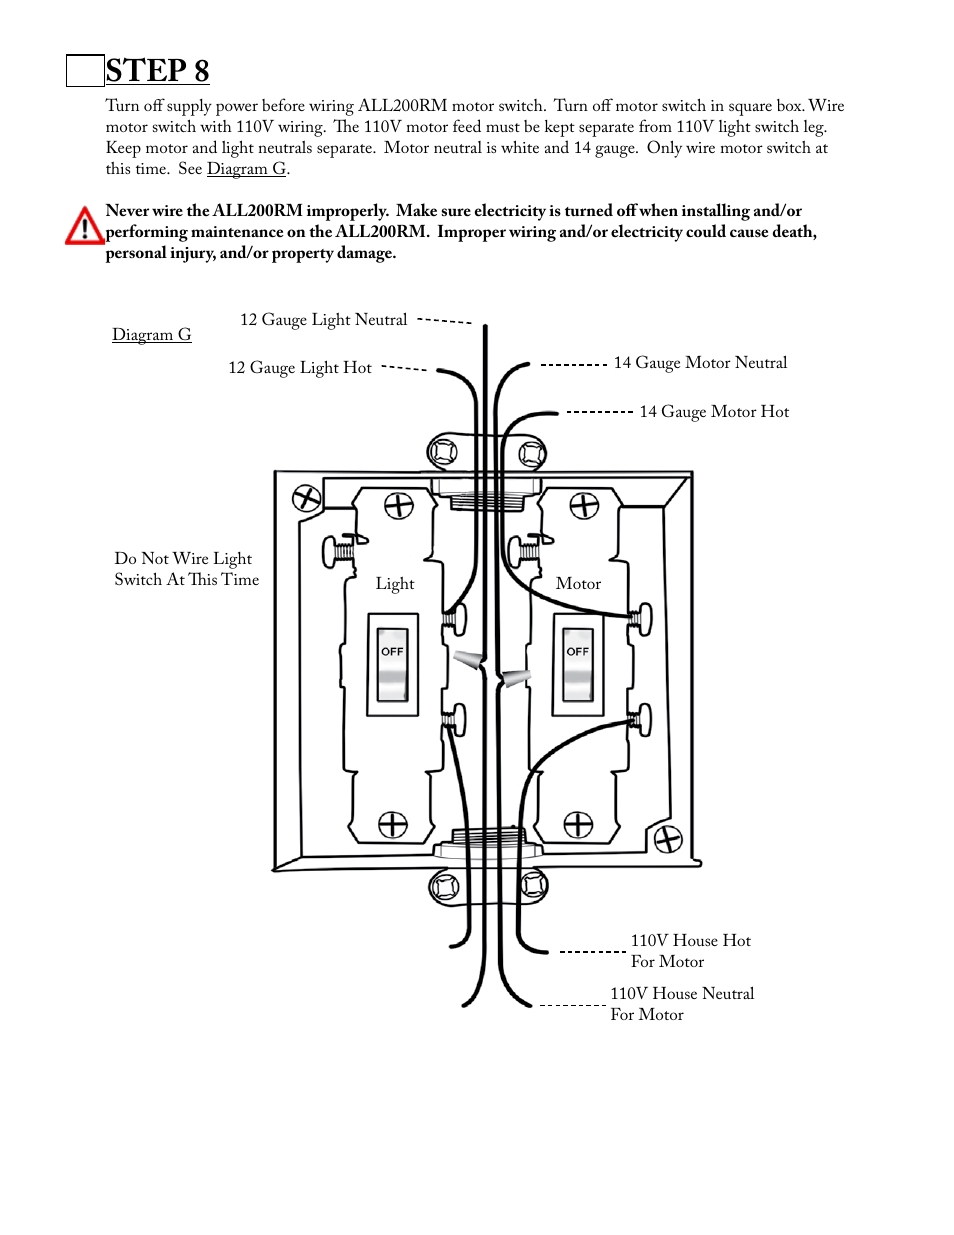 Step 8 Aladdin Light Lift All200rm Cm User Manual Page 7 22 House Wiring 110v